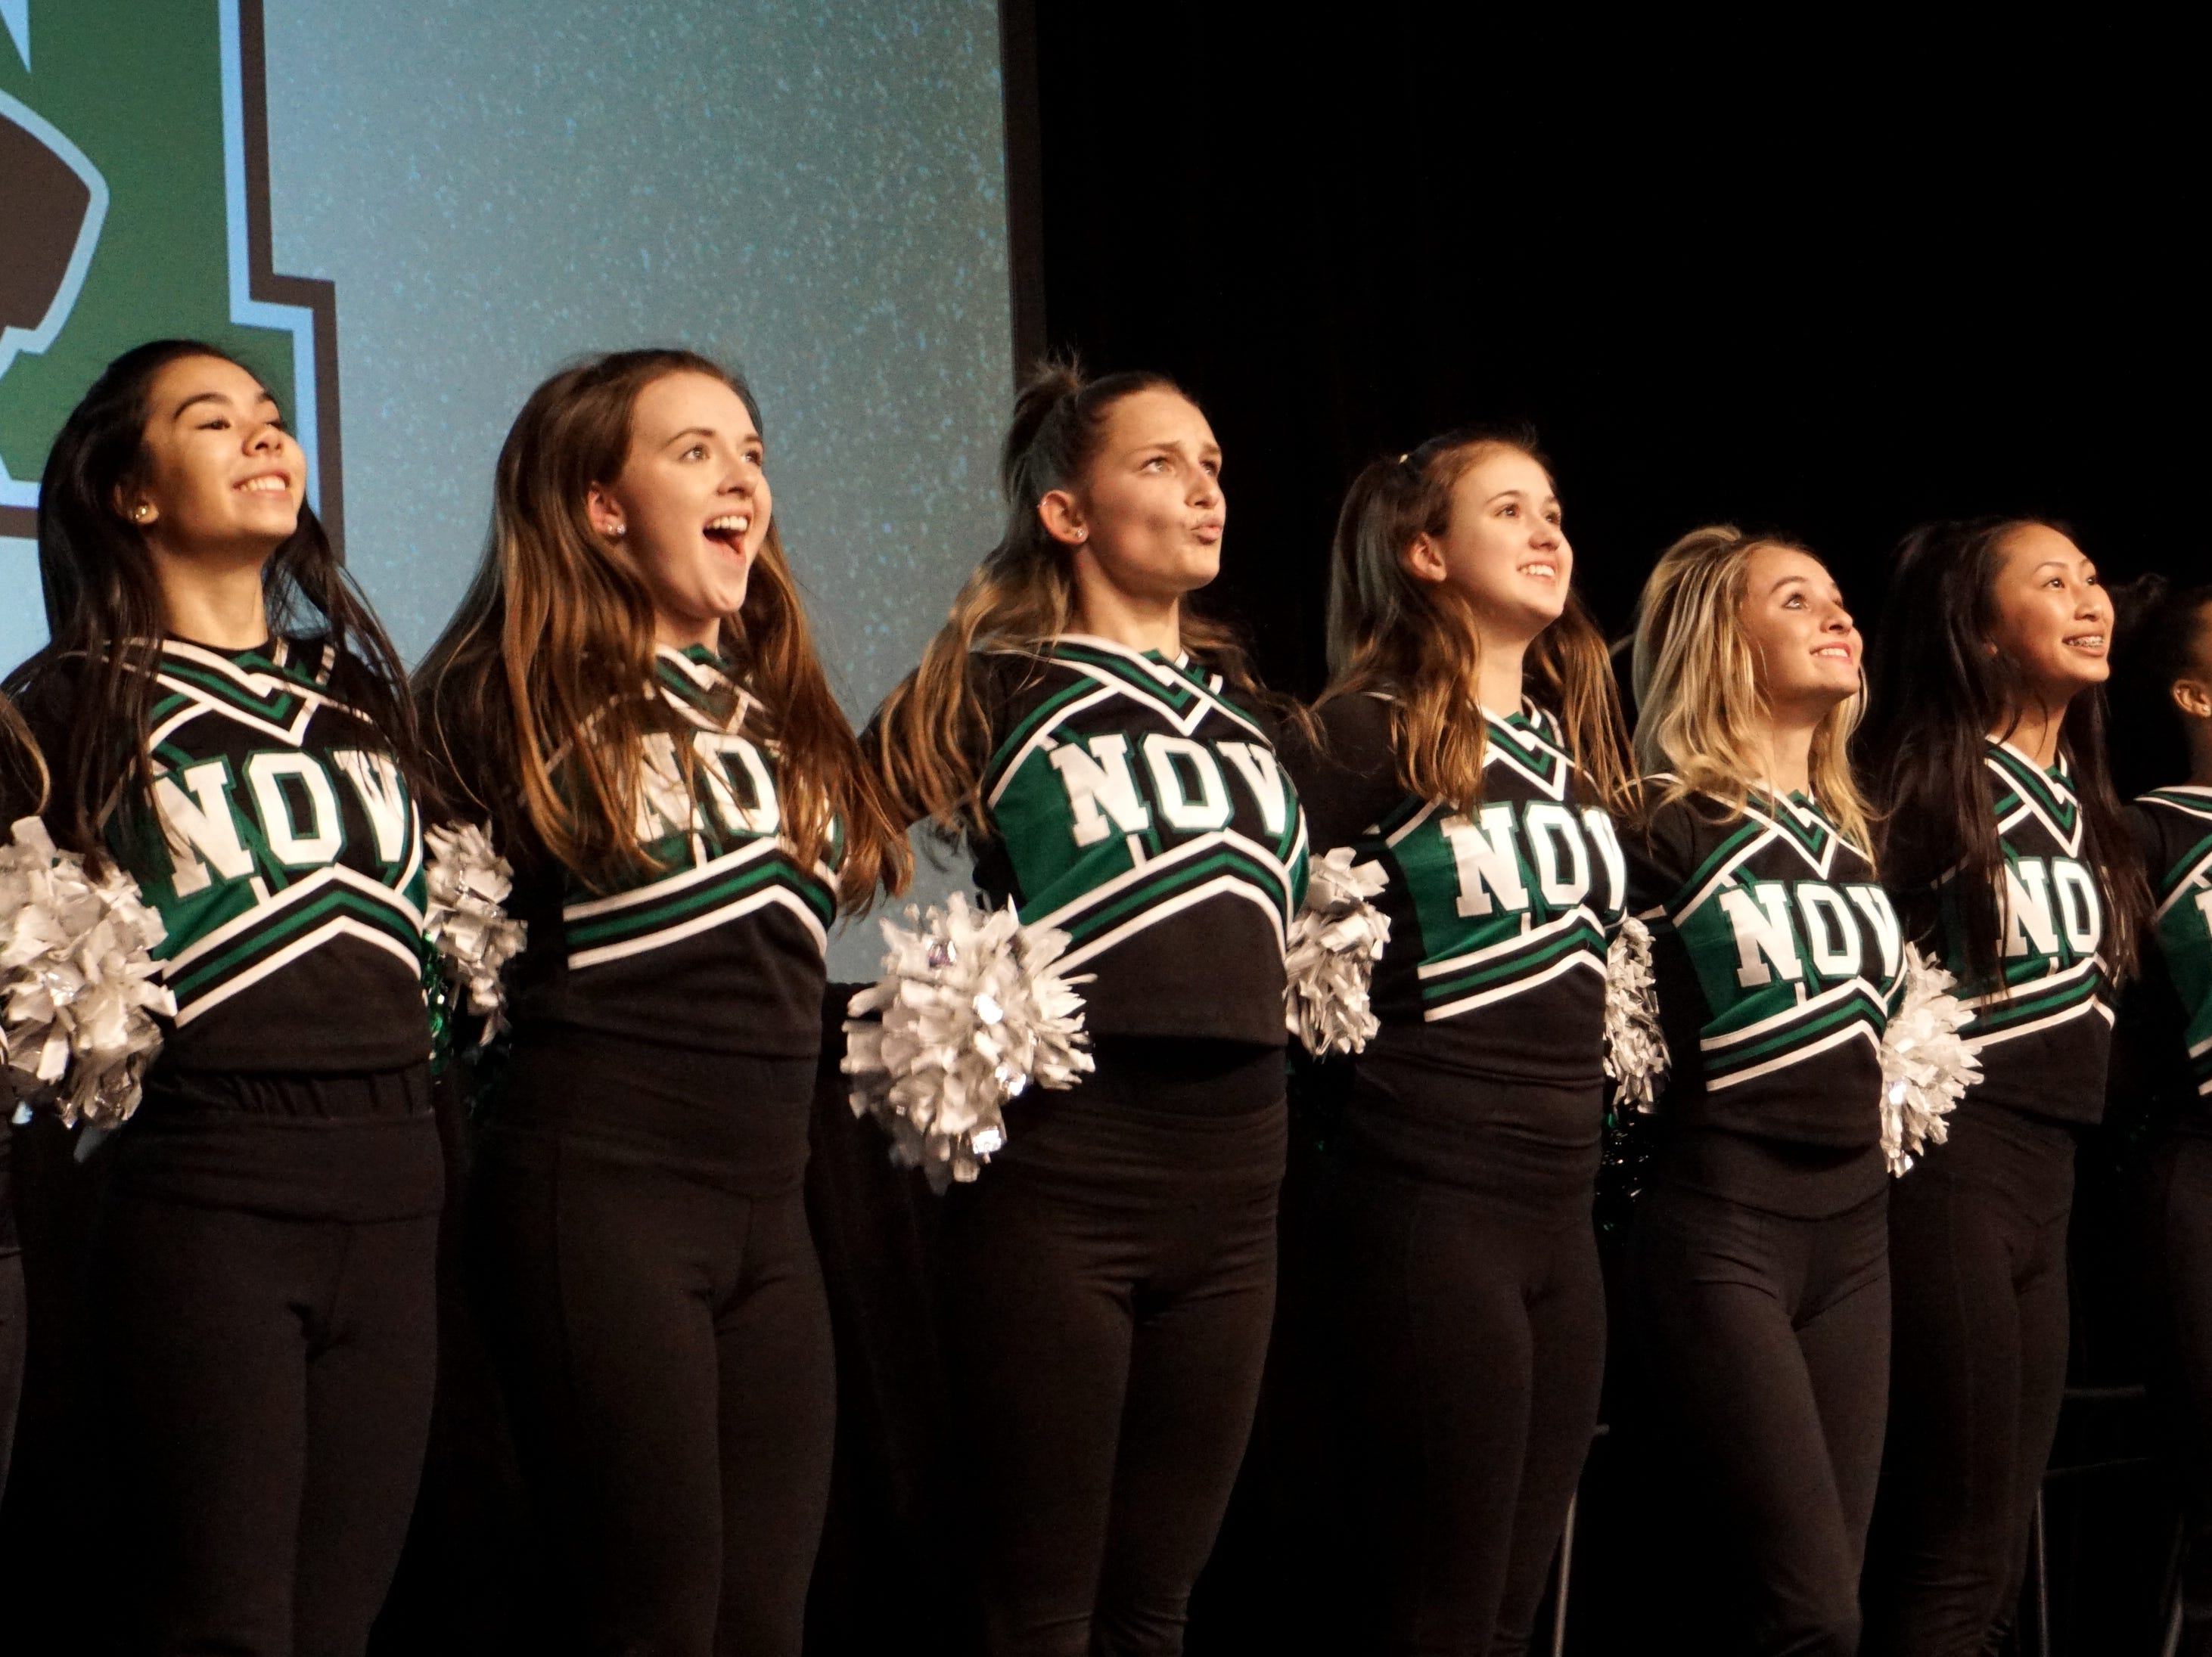 The Novi High School varsity pom-pon team performs a quick routine before the Tigers' visit to the Civic Center.